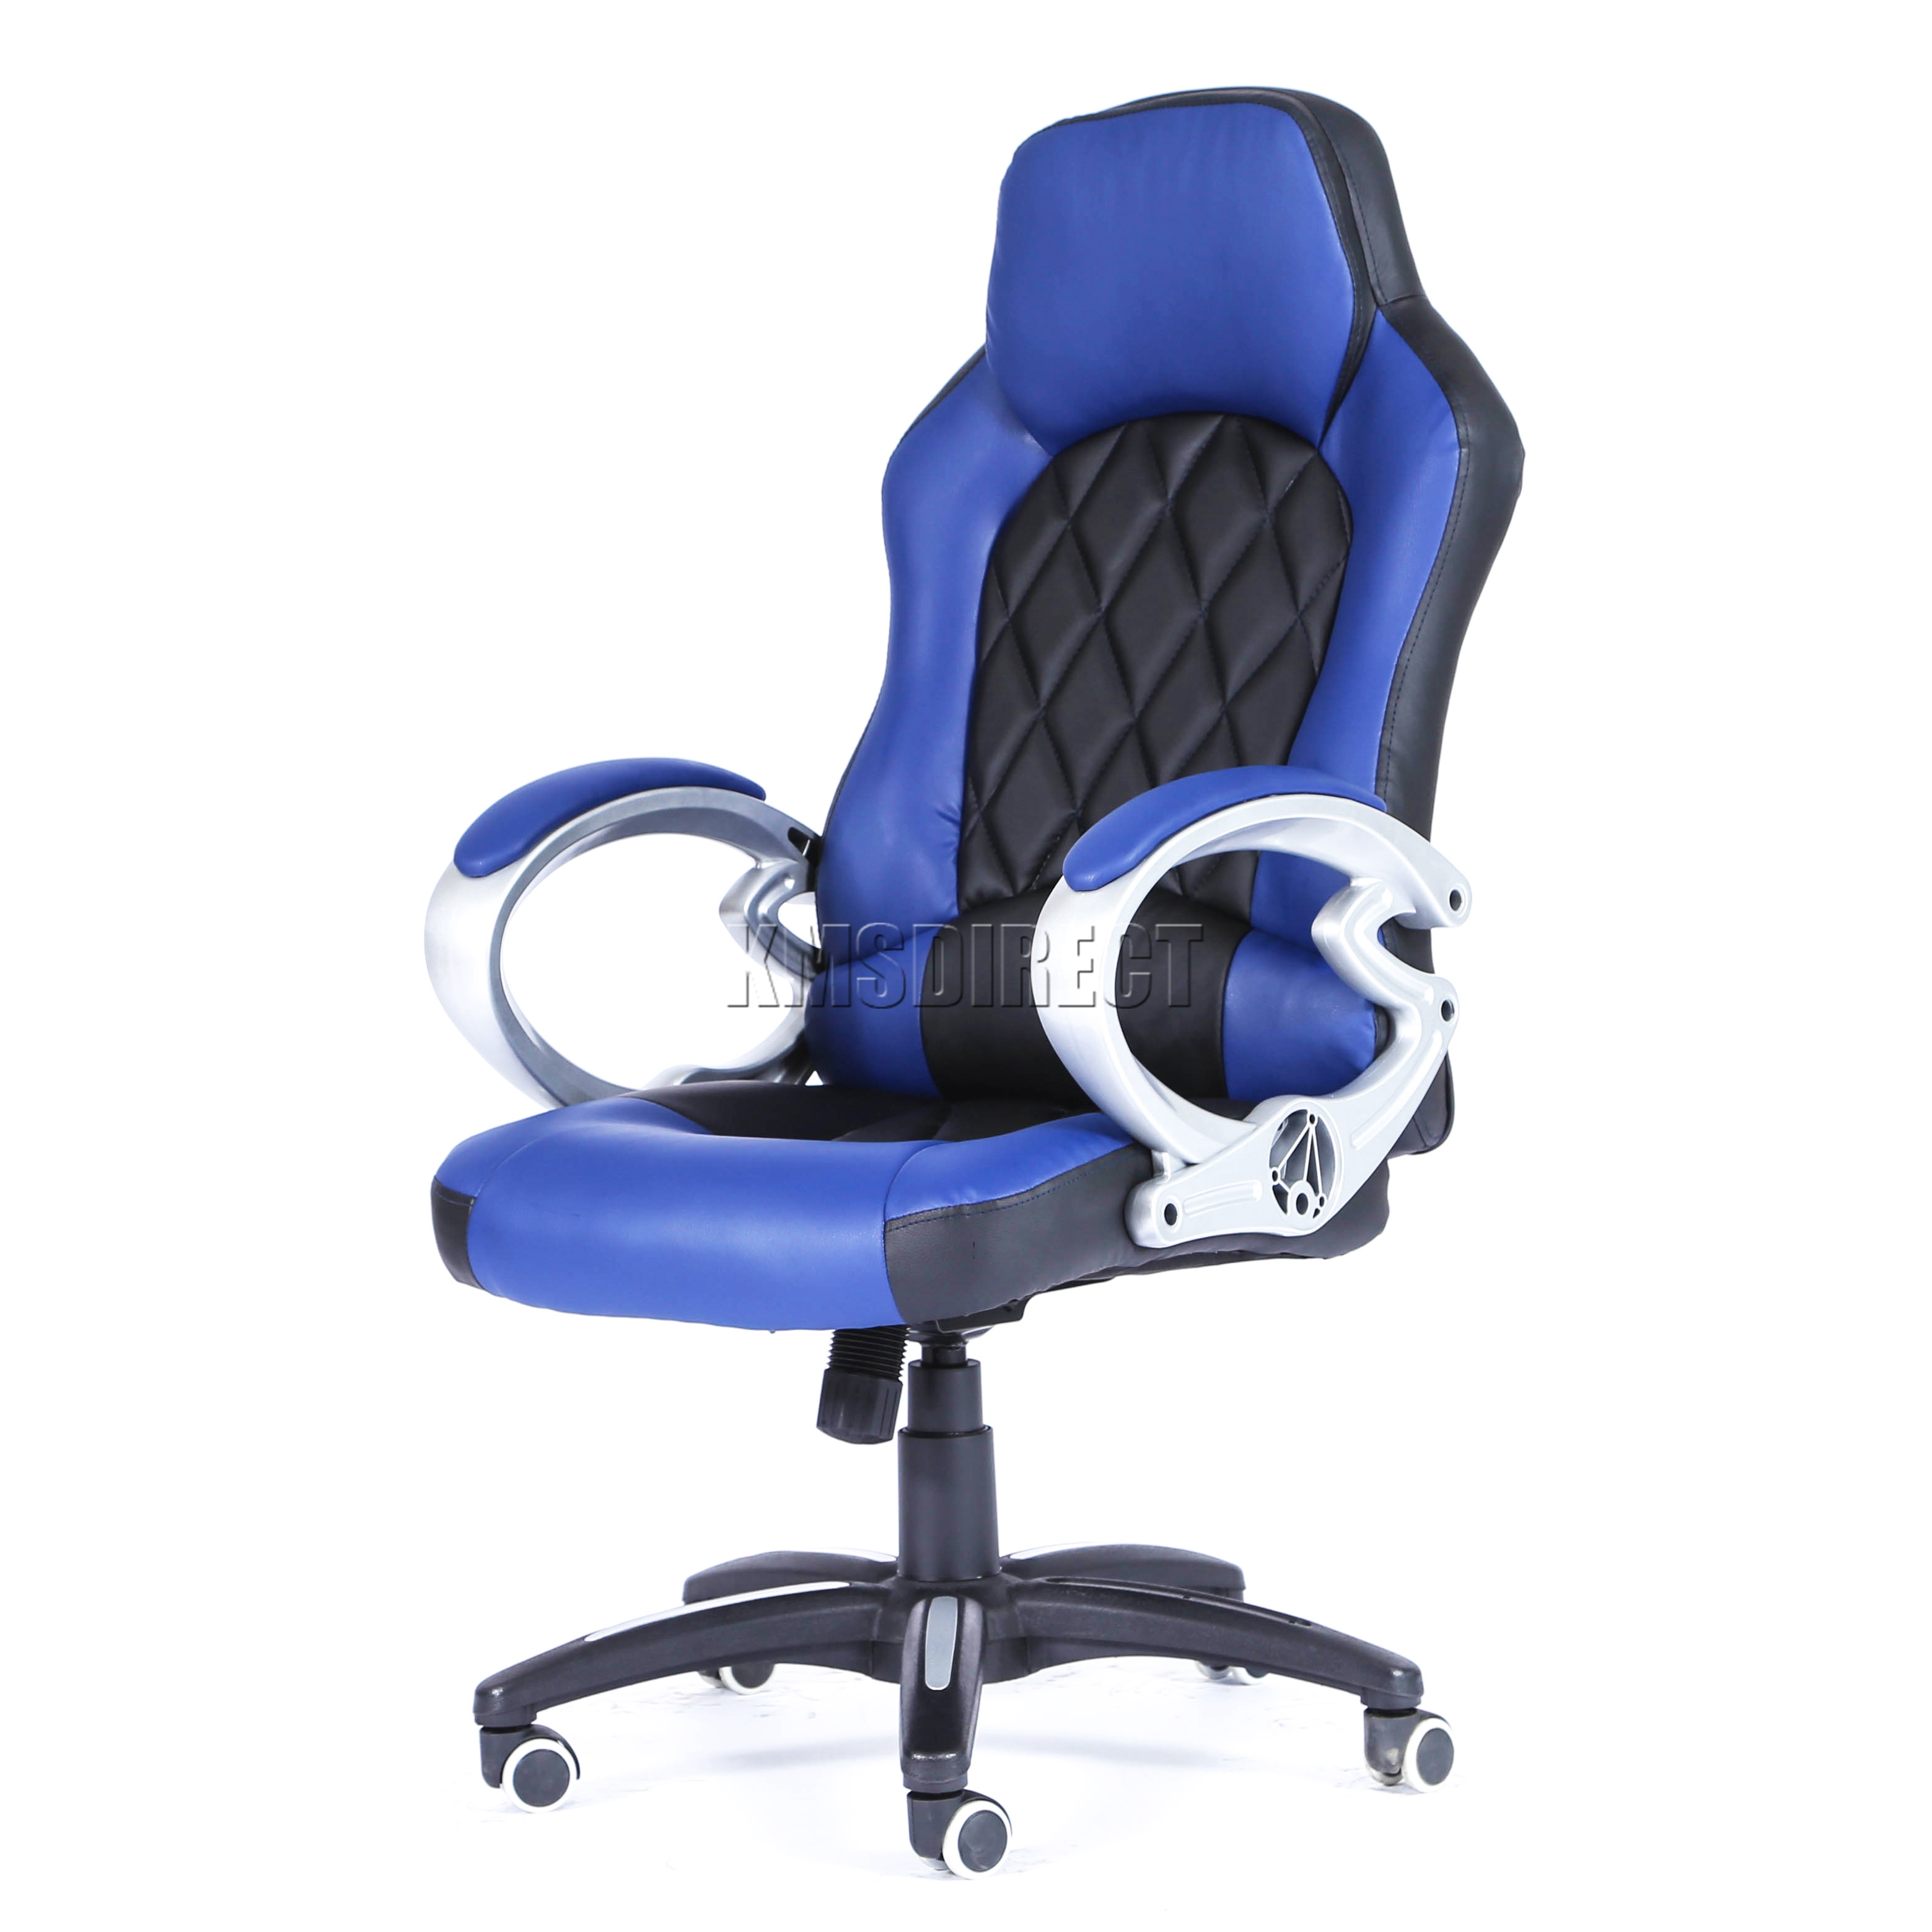 Computer executive office chair pu leather swivel high back oc10 blue